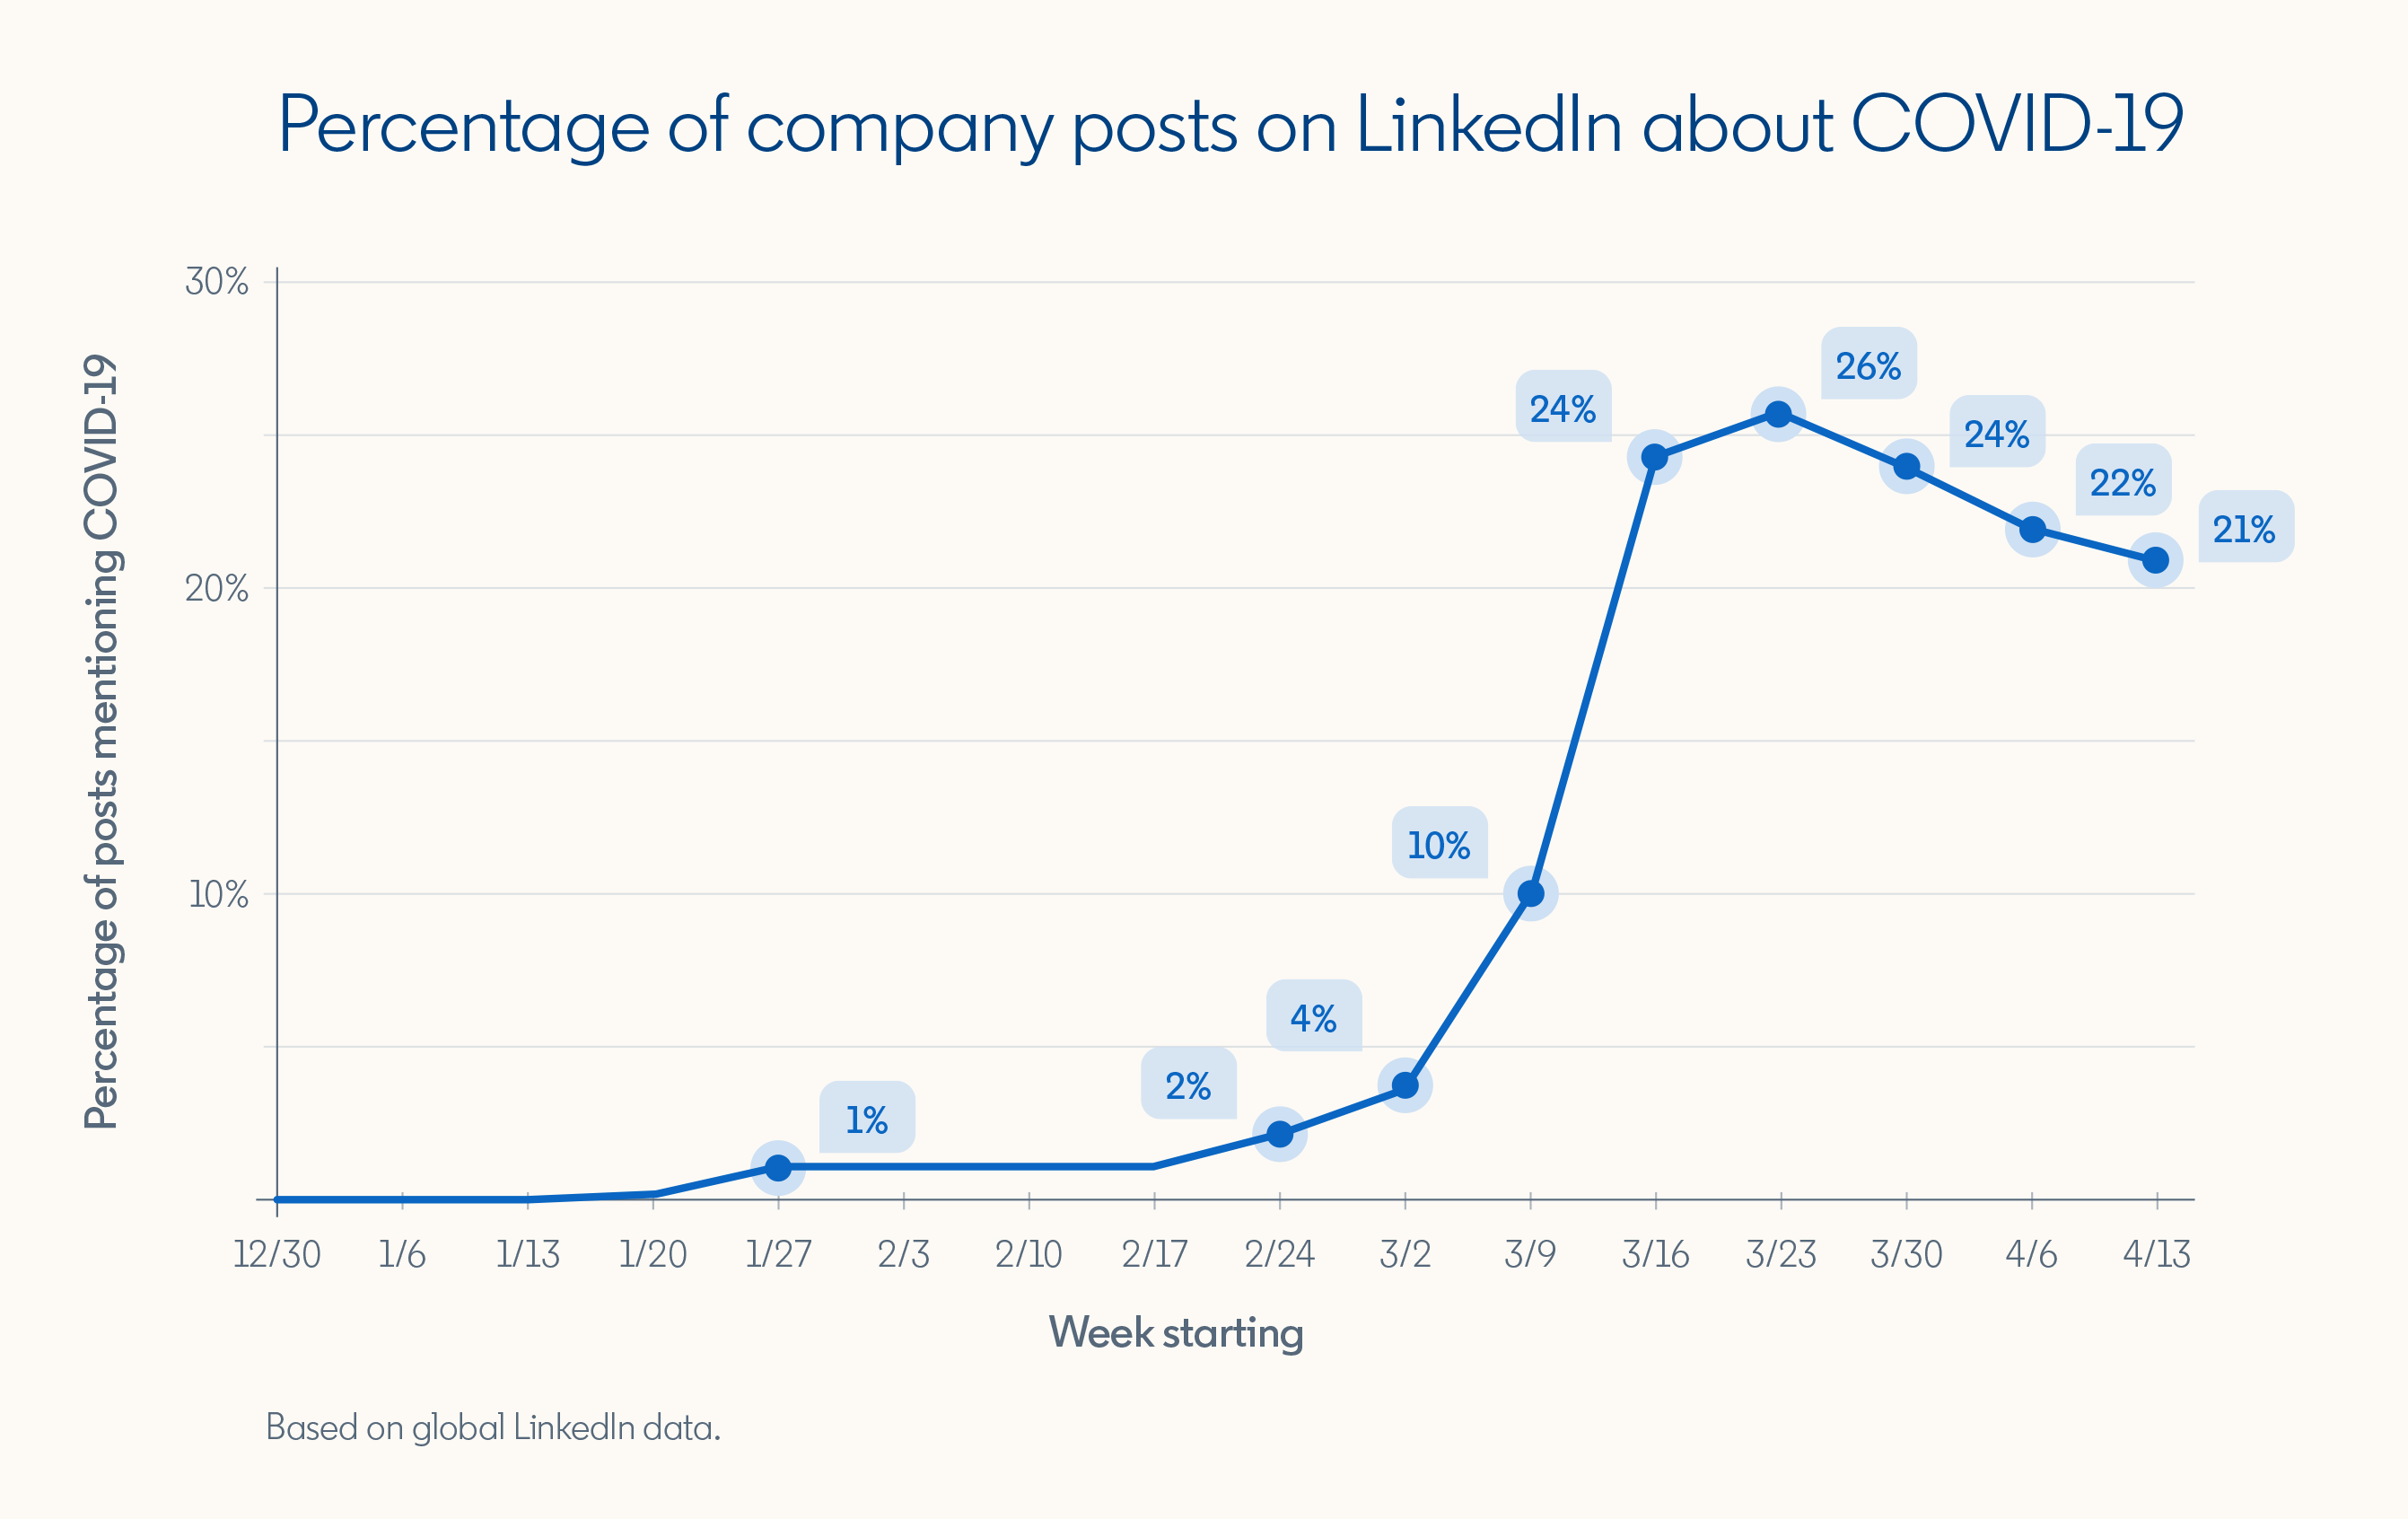 "Graph showing ""Percentage of company posts on LinkedIn about COVID-19""  Week starting 1/27/20: 1% Week starting 2/24: 2% Week starting 3/2: 4% Week starting 3/9: 10% Week starting 3/16: 24% Week starting 3/23: 26% Week starting 3/30: 24% Week starting 4/6: 22% Week starting 4/13: 22%  *Based on global LinkedIn data"